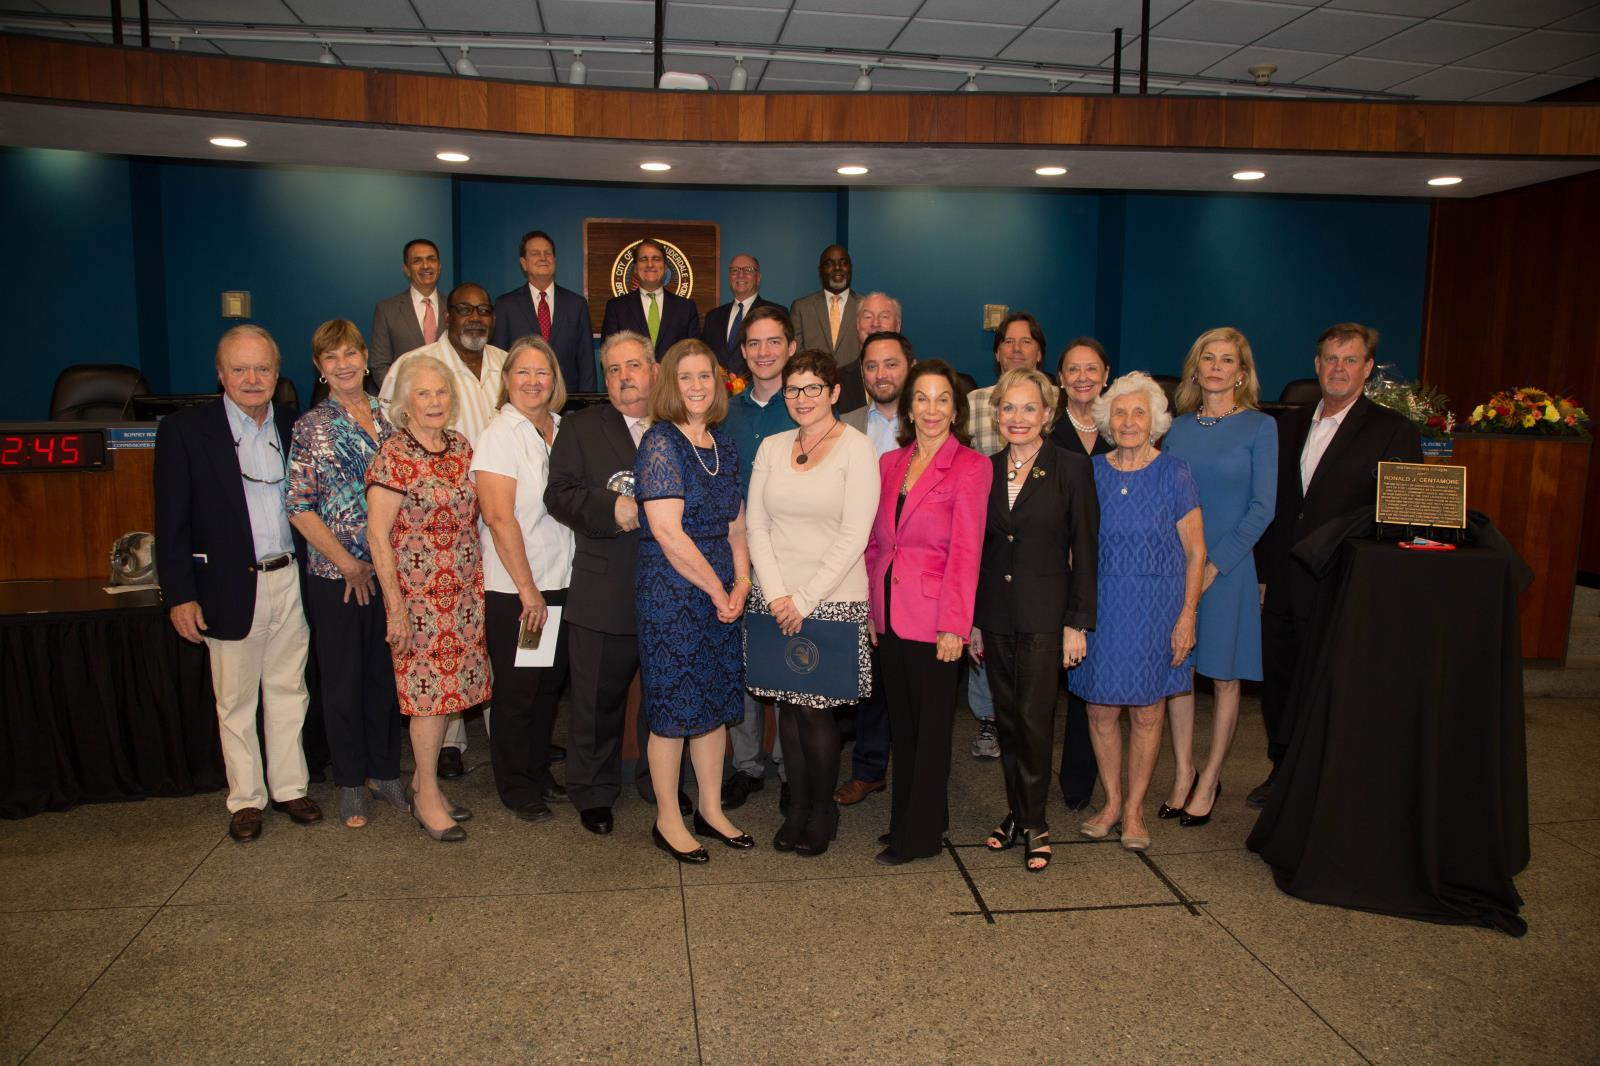 Fort Lauderdale City Commission with past and present Citizens Recognition Awards honorees